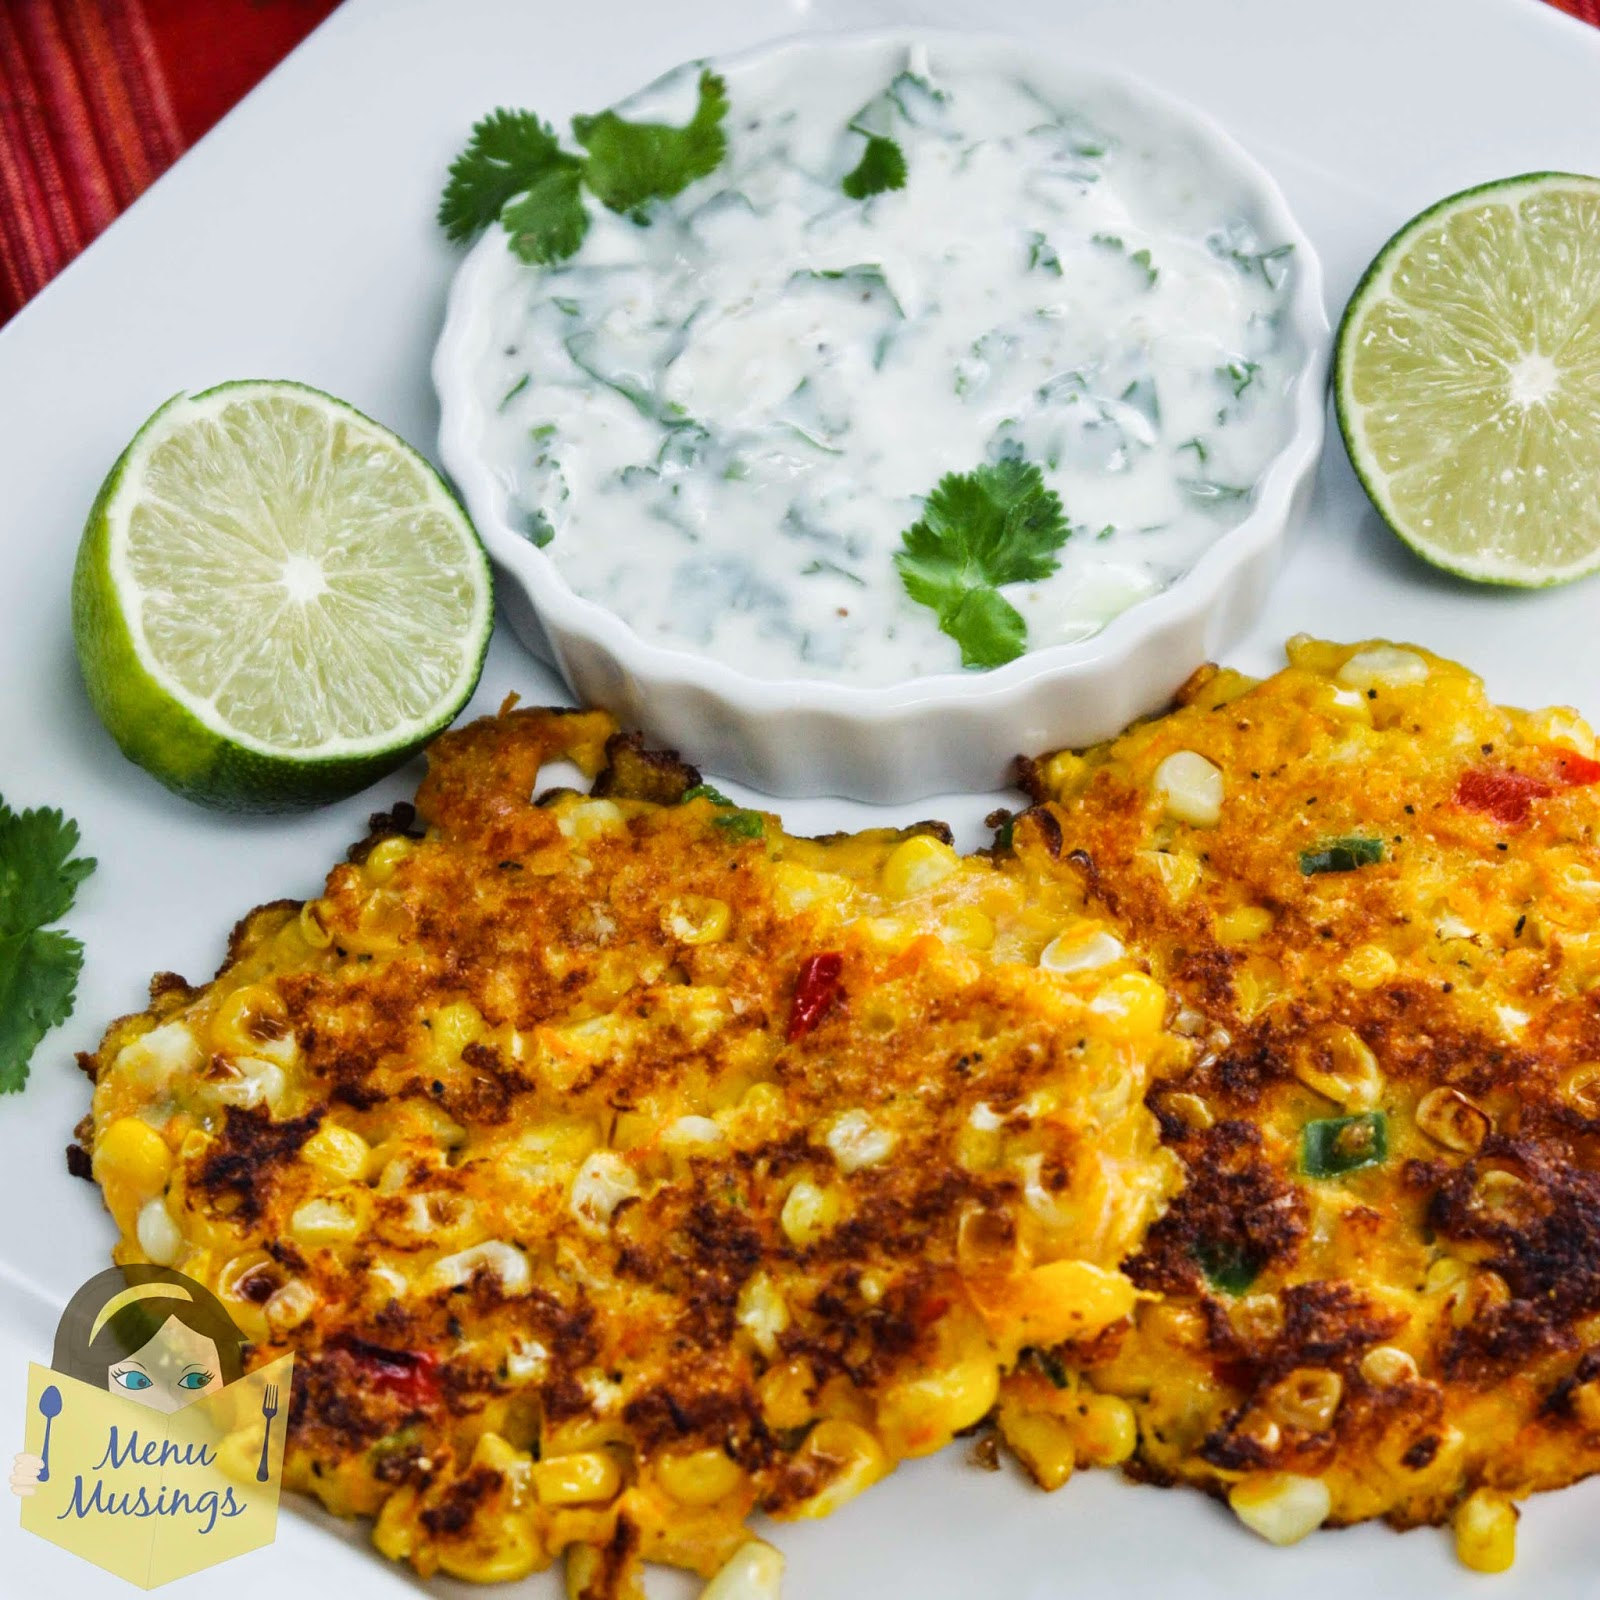 Corn cakes with Cilantro Lime Cream @ menumusings.com